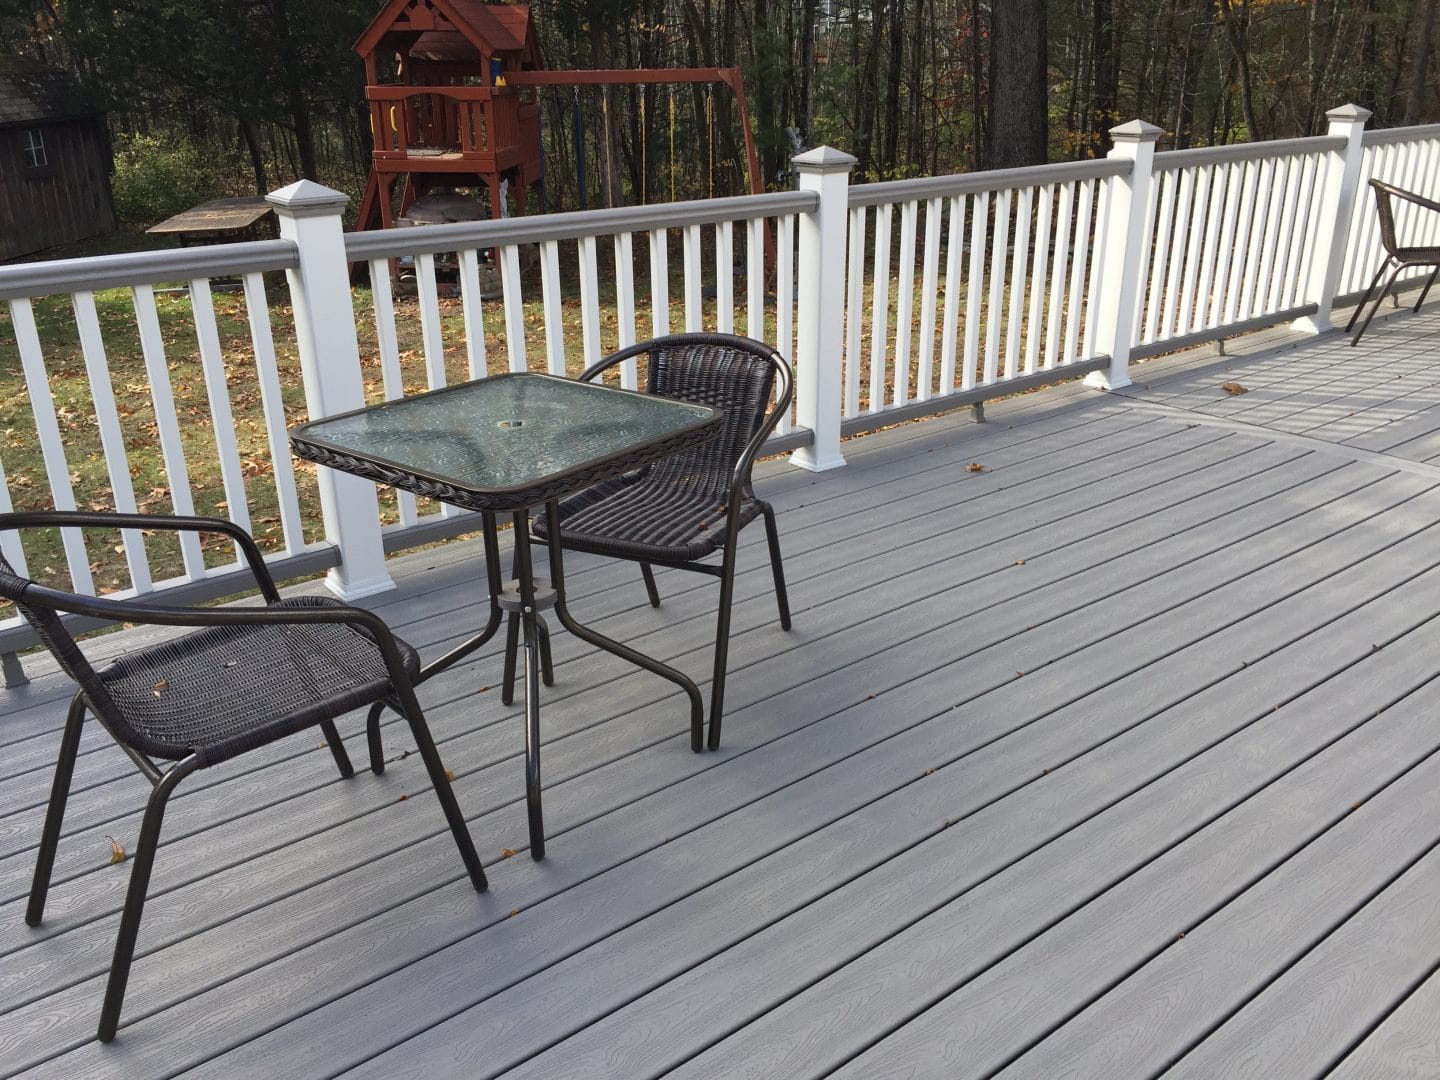 Check the Deck | National Deck Safety Month